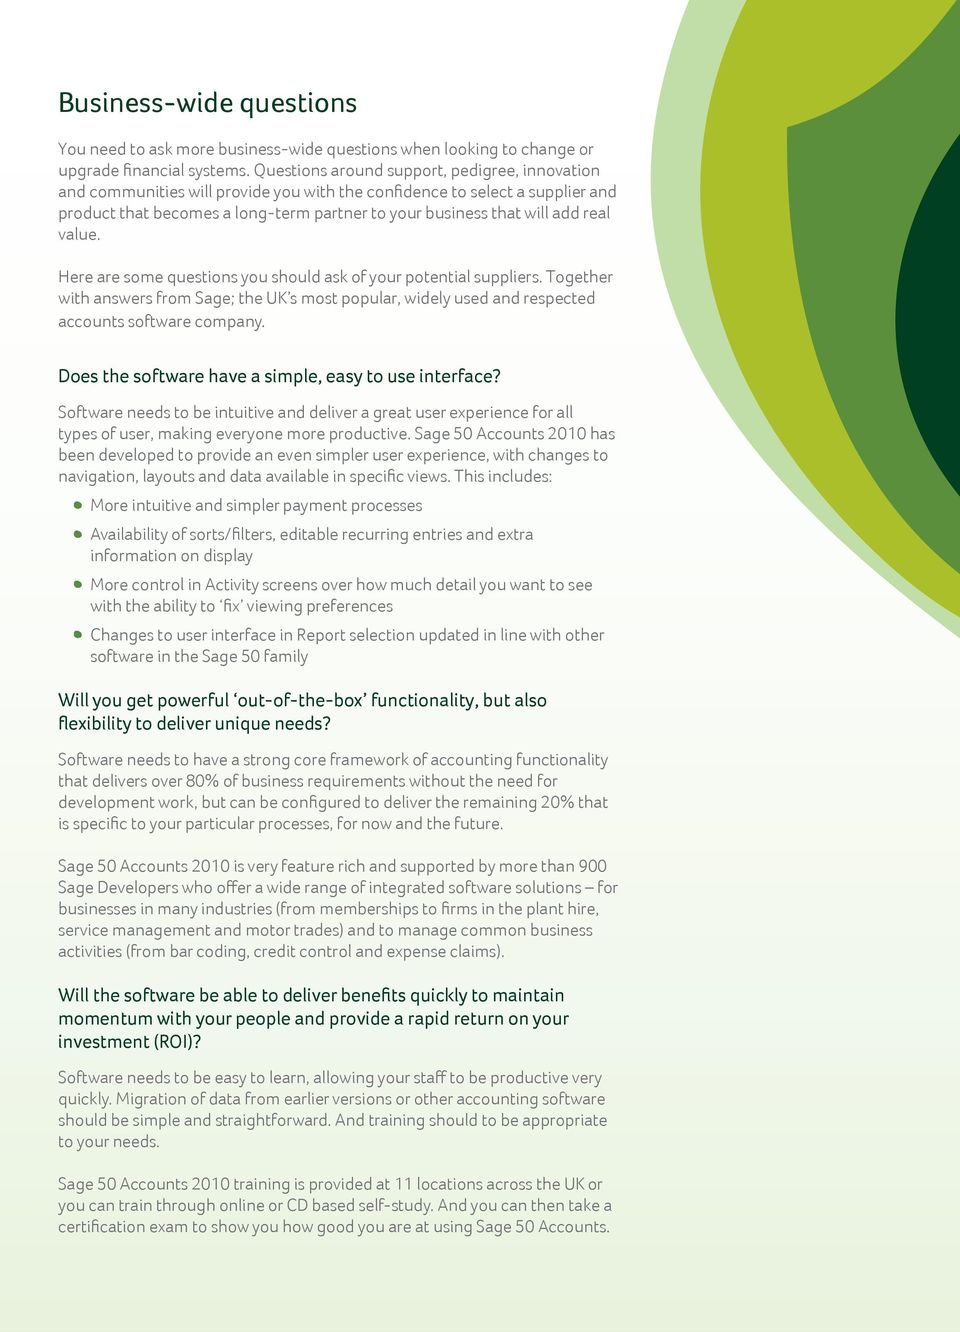 real value. Here are some questions you should ask of your potential suppliers. Together with answers from Sage; the UK s most popular, widely used and respected accounts software company.